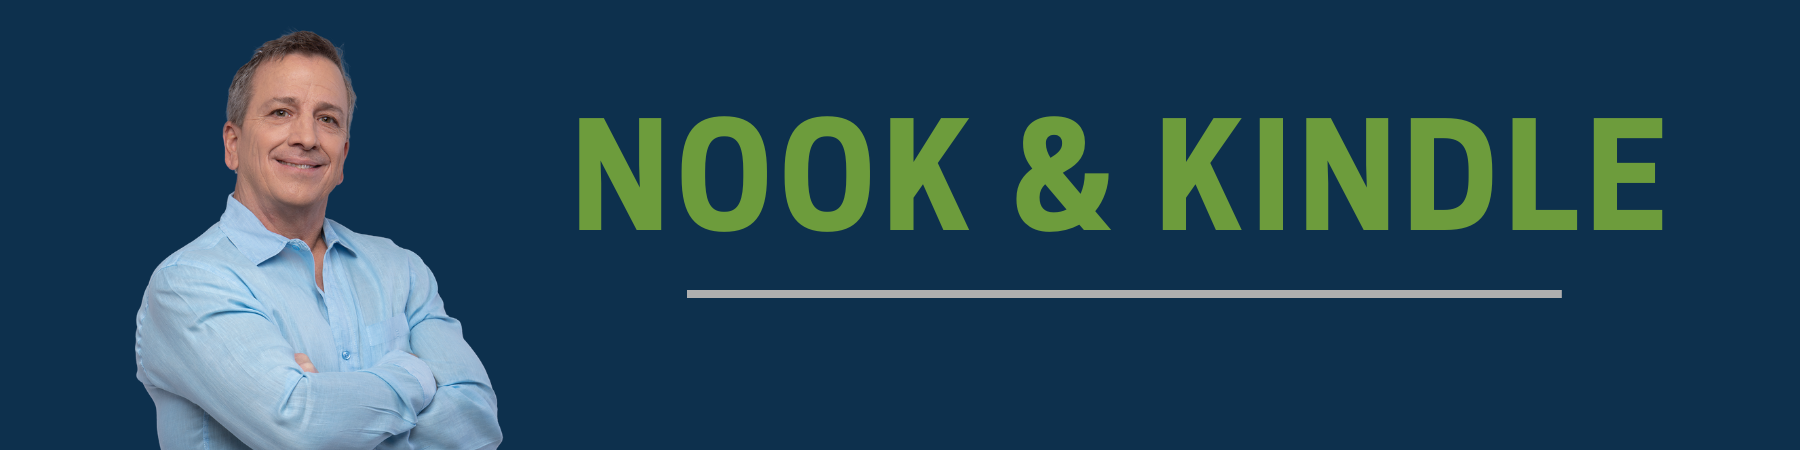 Nook and kindle Web Banners 1800x450 1 | Ken McElroy Image